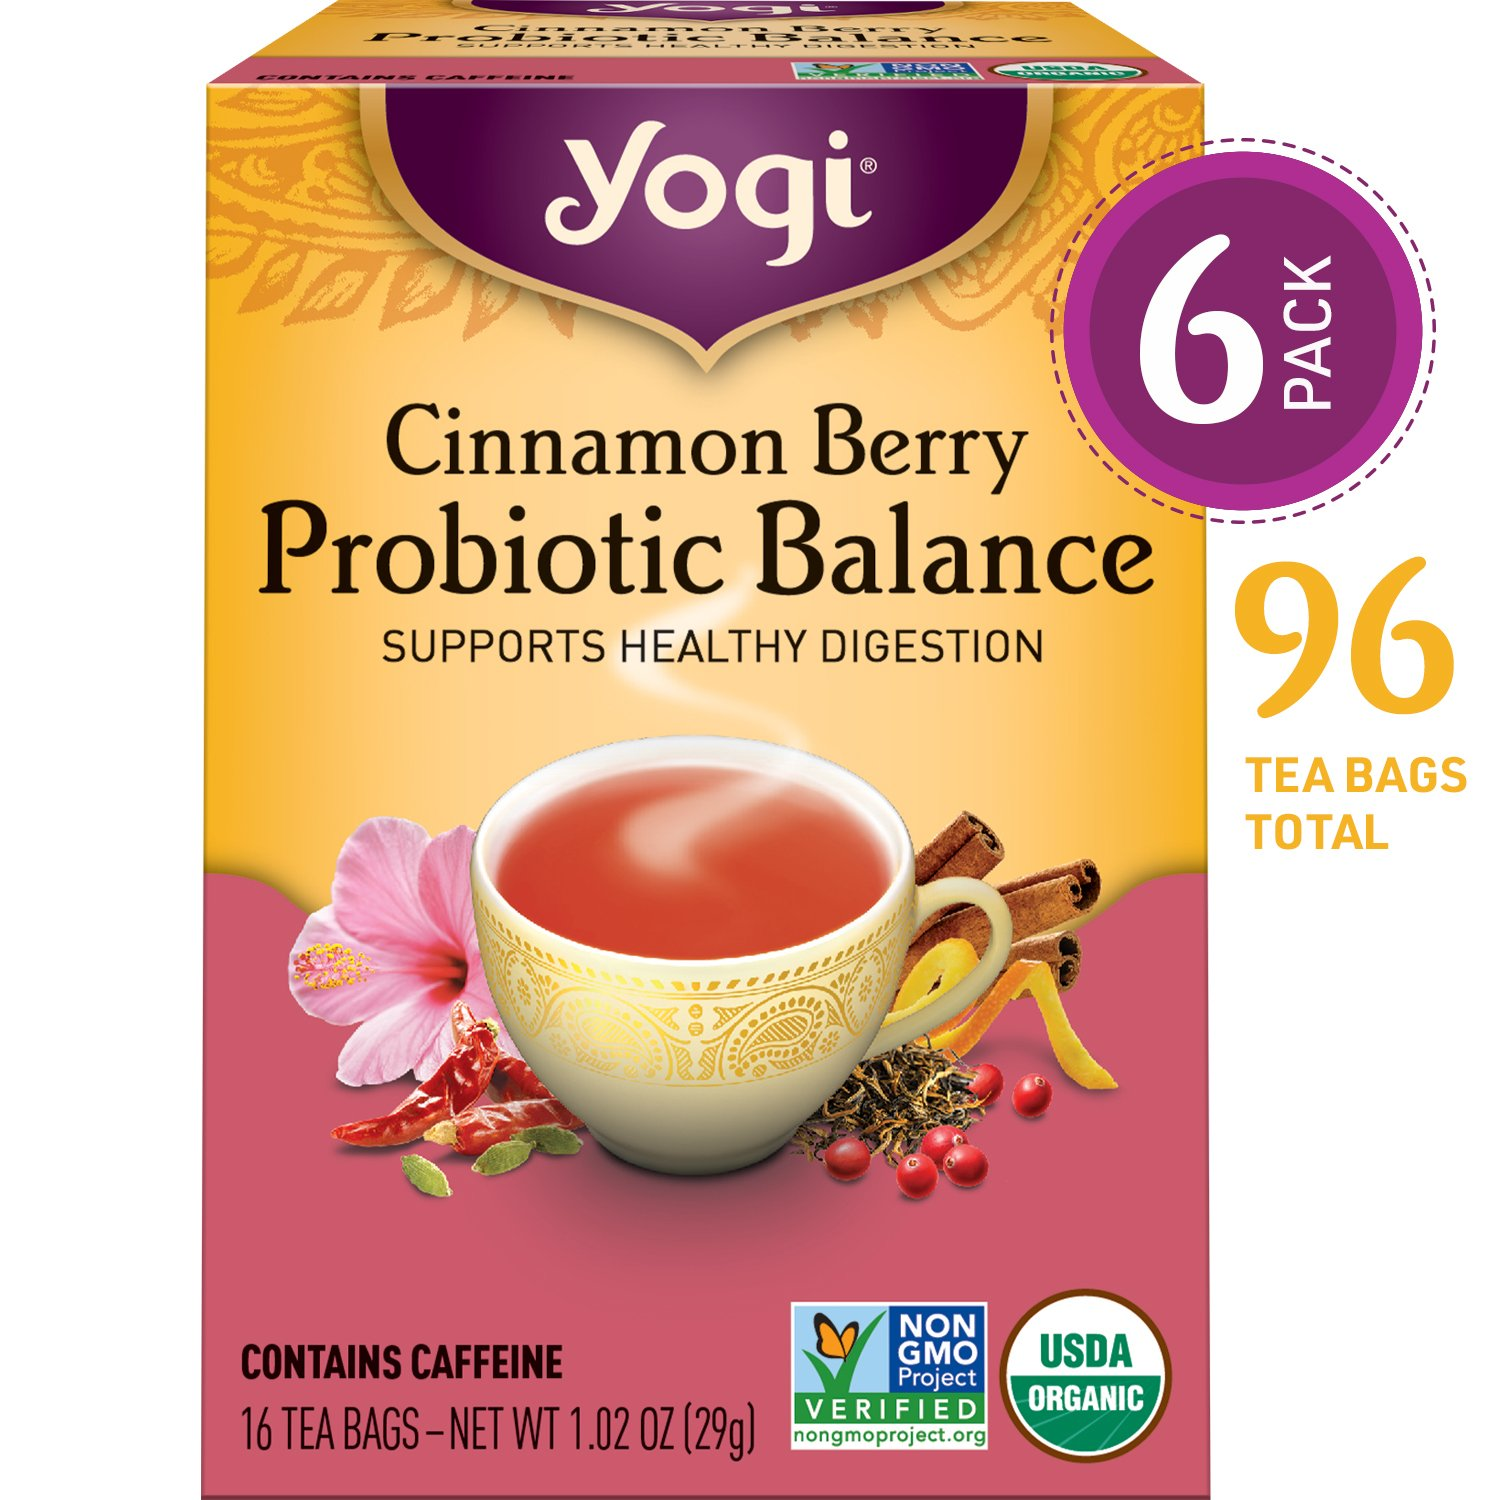 Yogi Tea - Cinnamon Berry Probiotic Balance - Supports Healthy Digestion